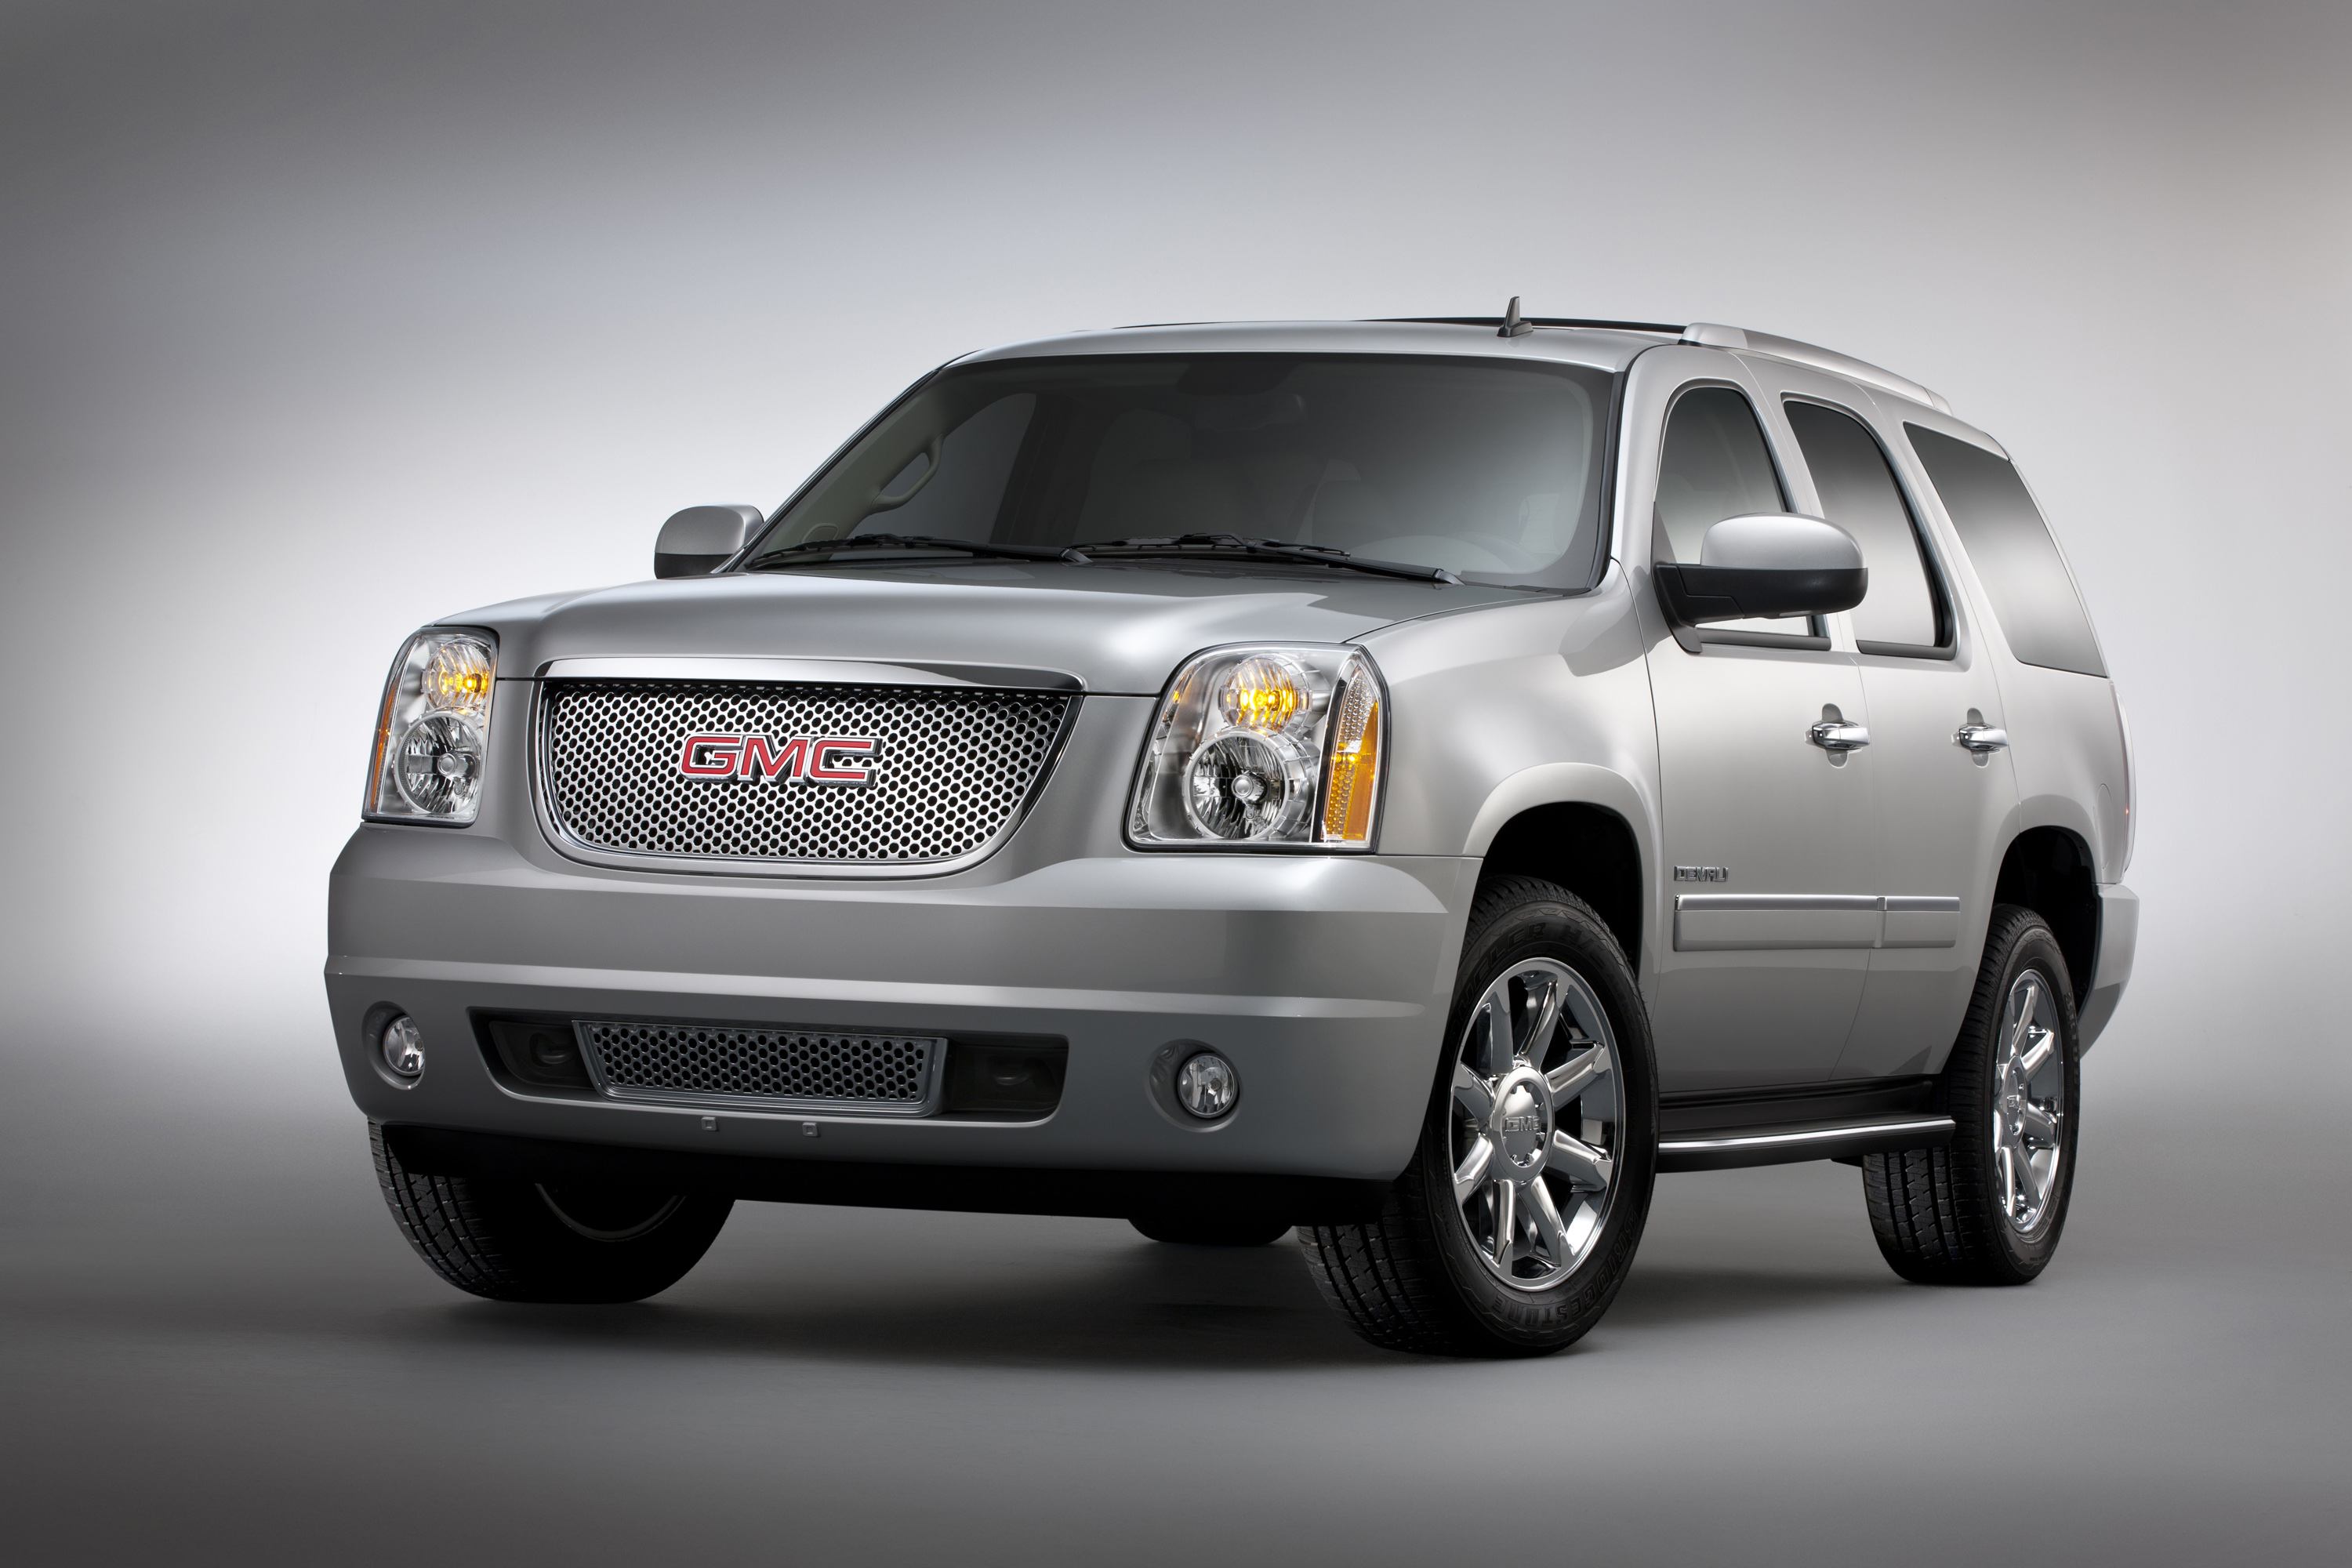 xl full chevrolet laketahoe ta suburban chevy front gmc size lake passenger undefeated yukon the tahoe side and in black suvs meet gm frontpassview